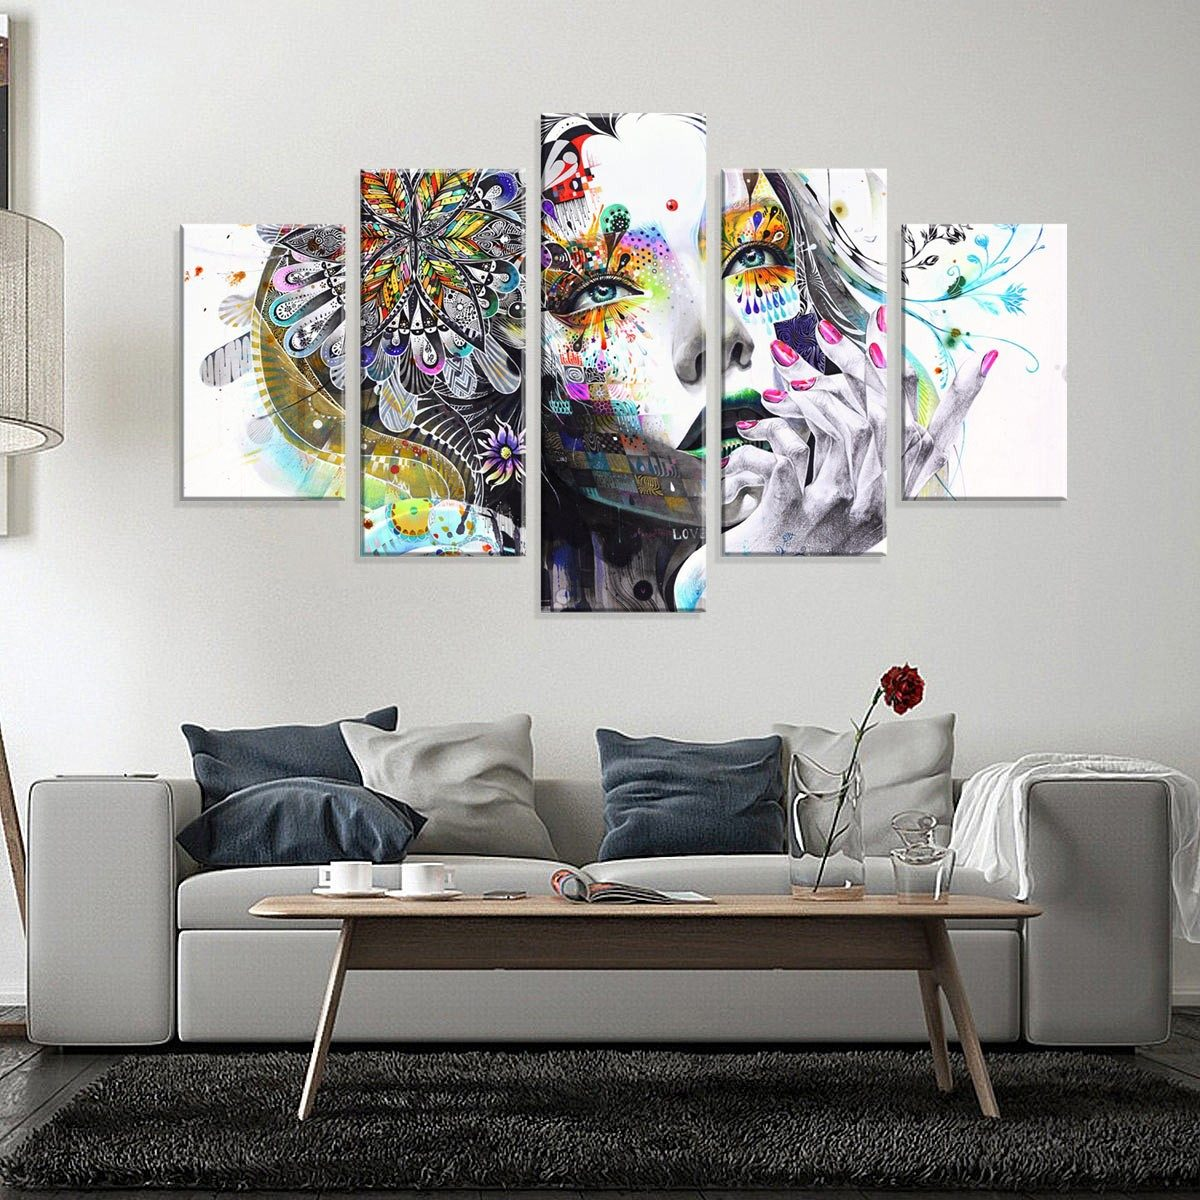 732e40e40 Conjunto De 5 Telas Decorativas Em Canvas Abstrato Face - R  299